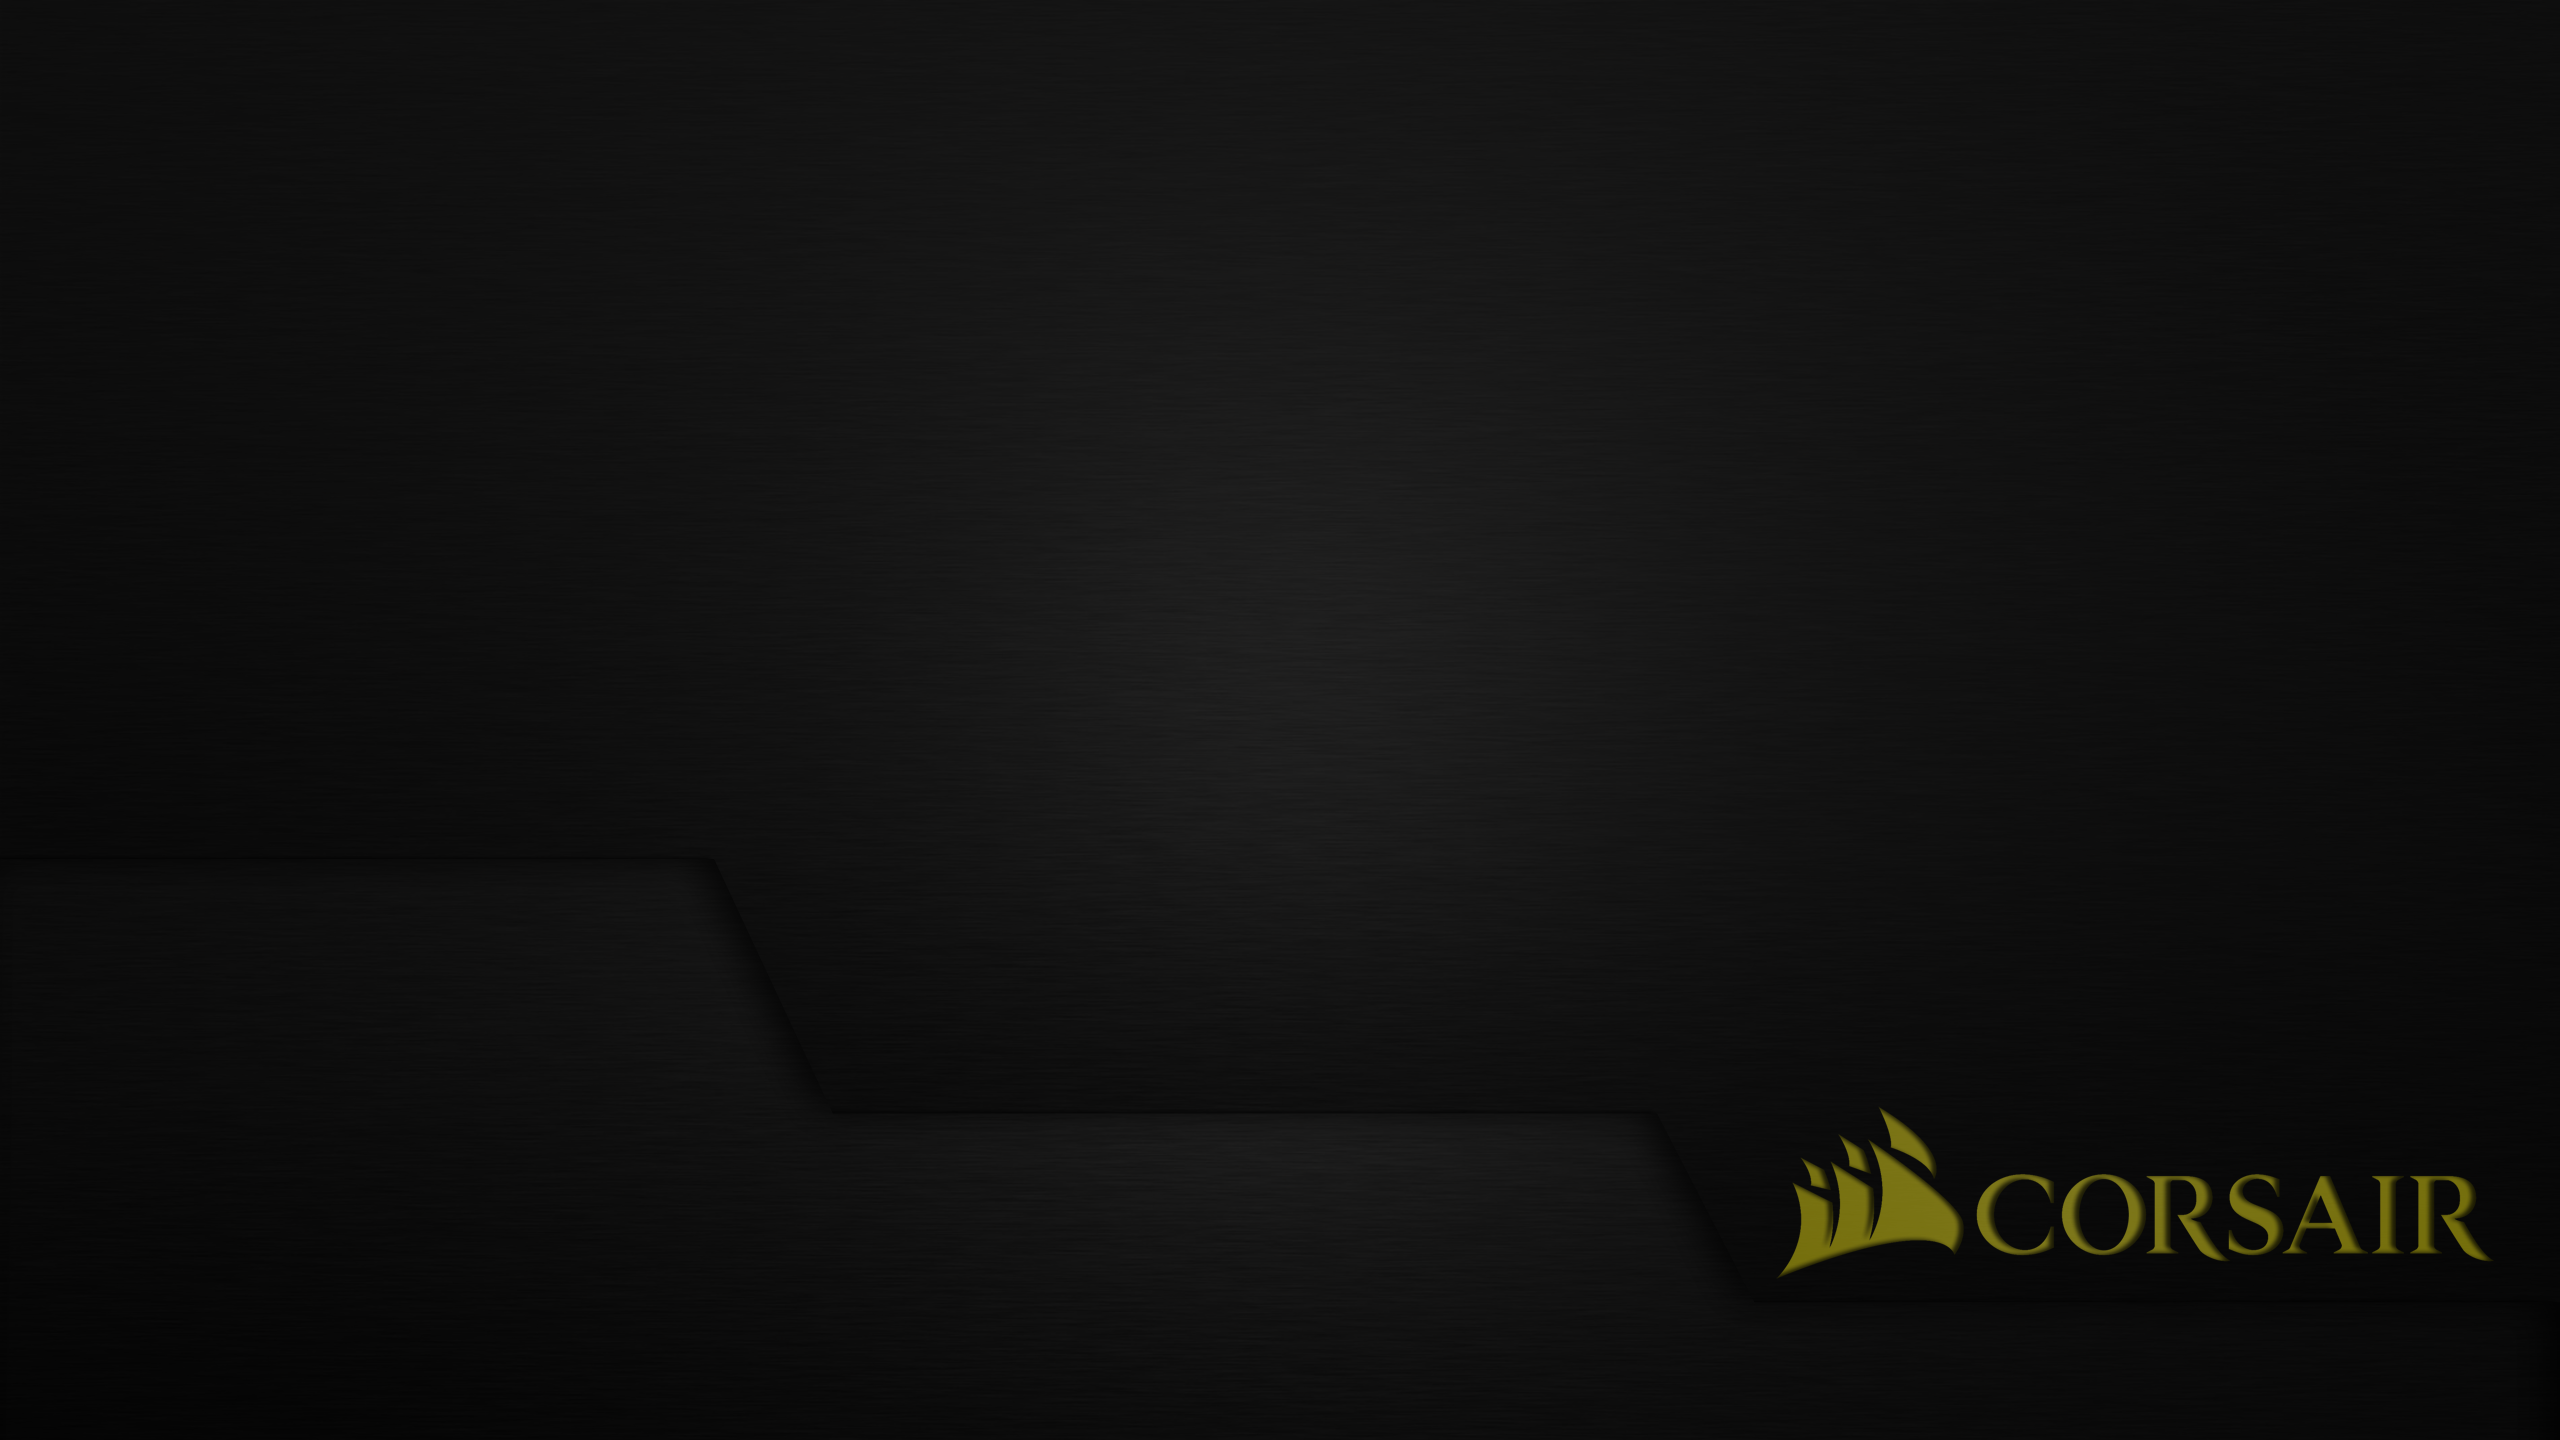 Minimalist Corsair Wallpaper High Quality Wallpapers Hd